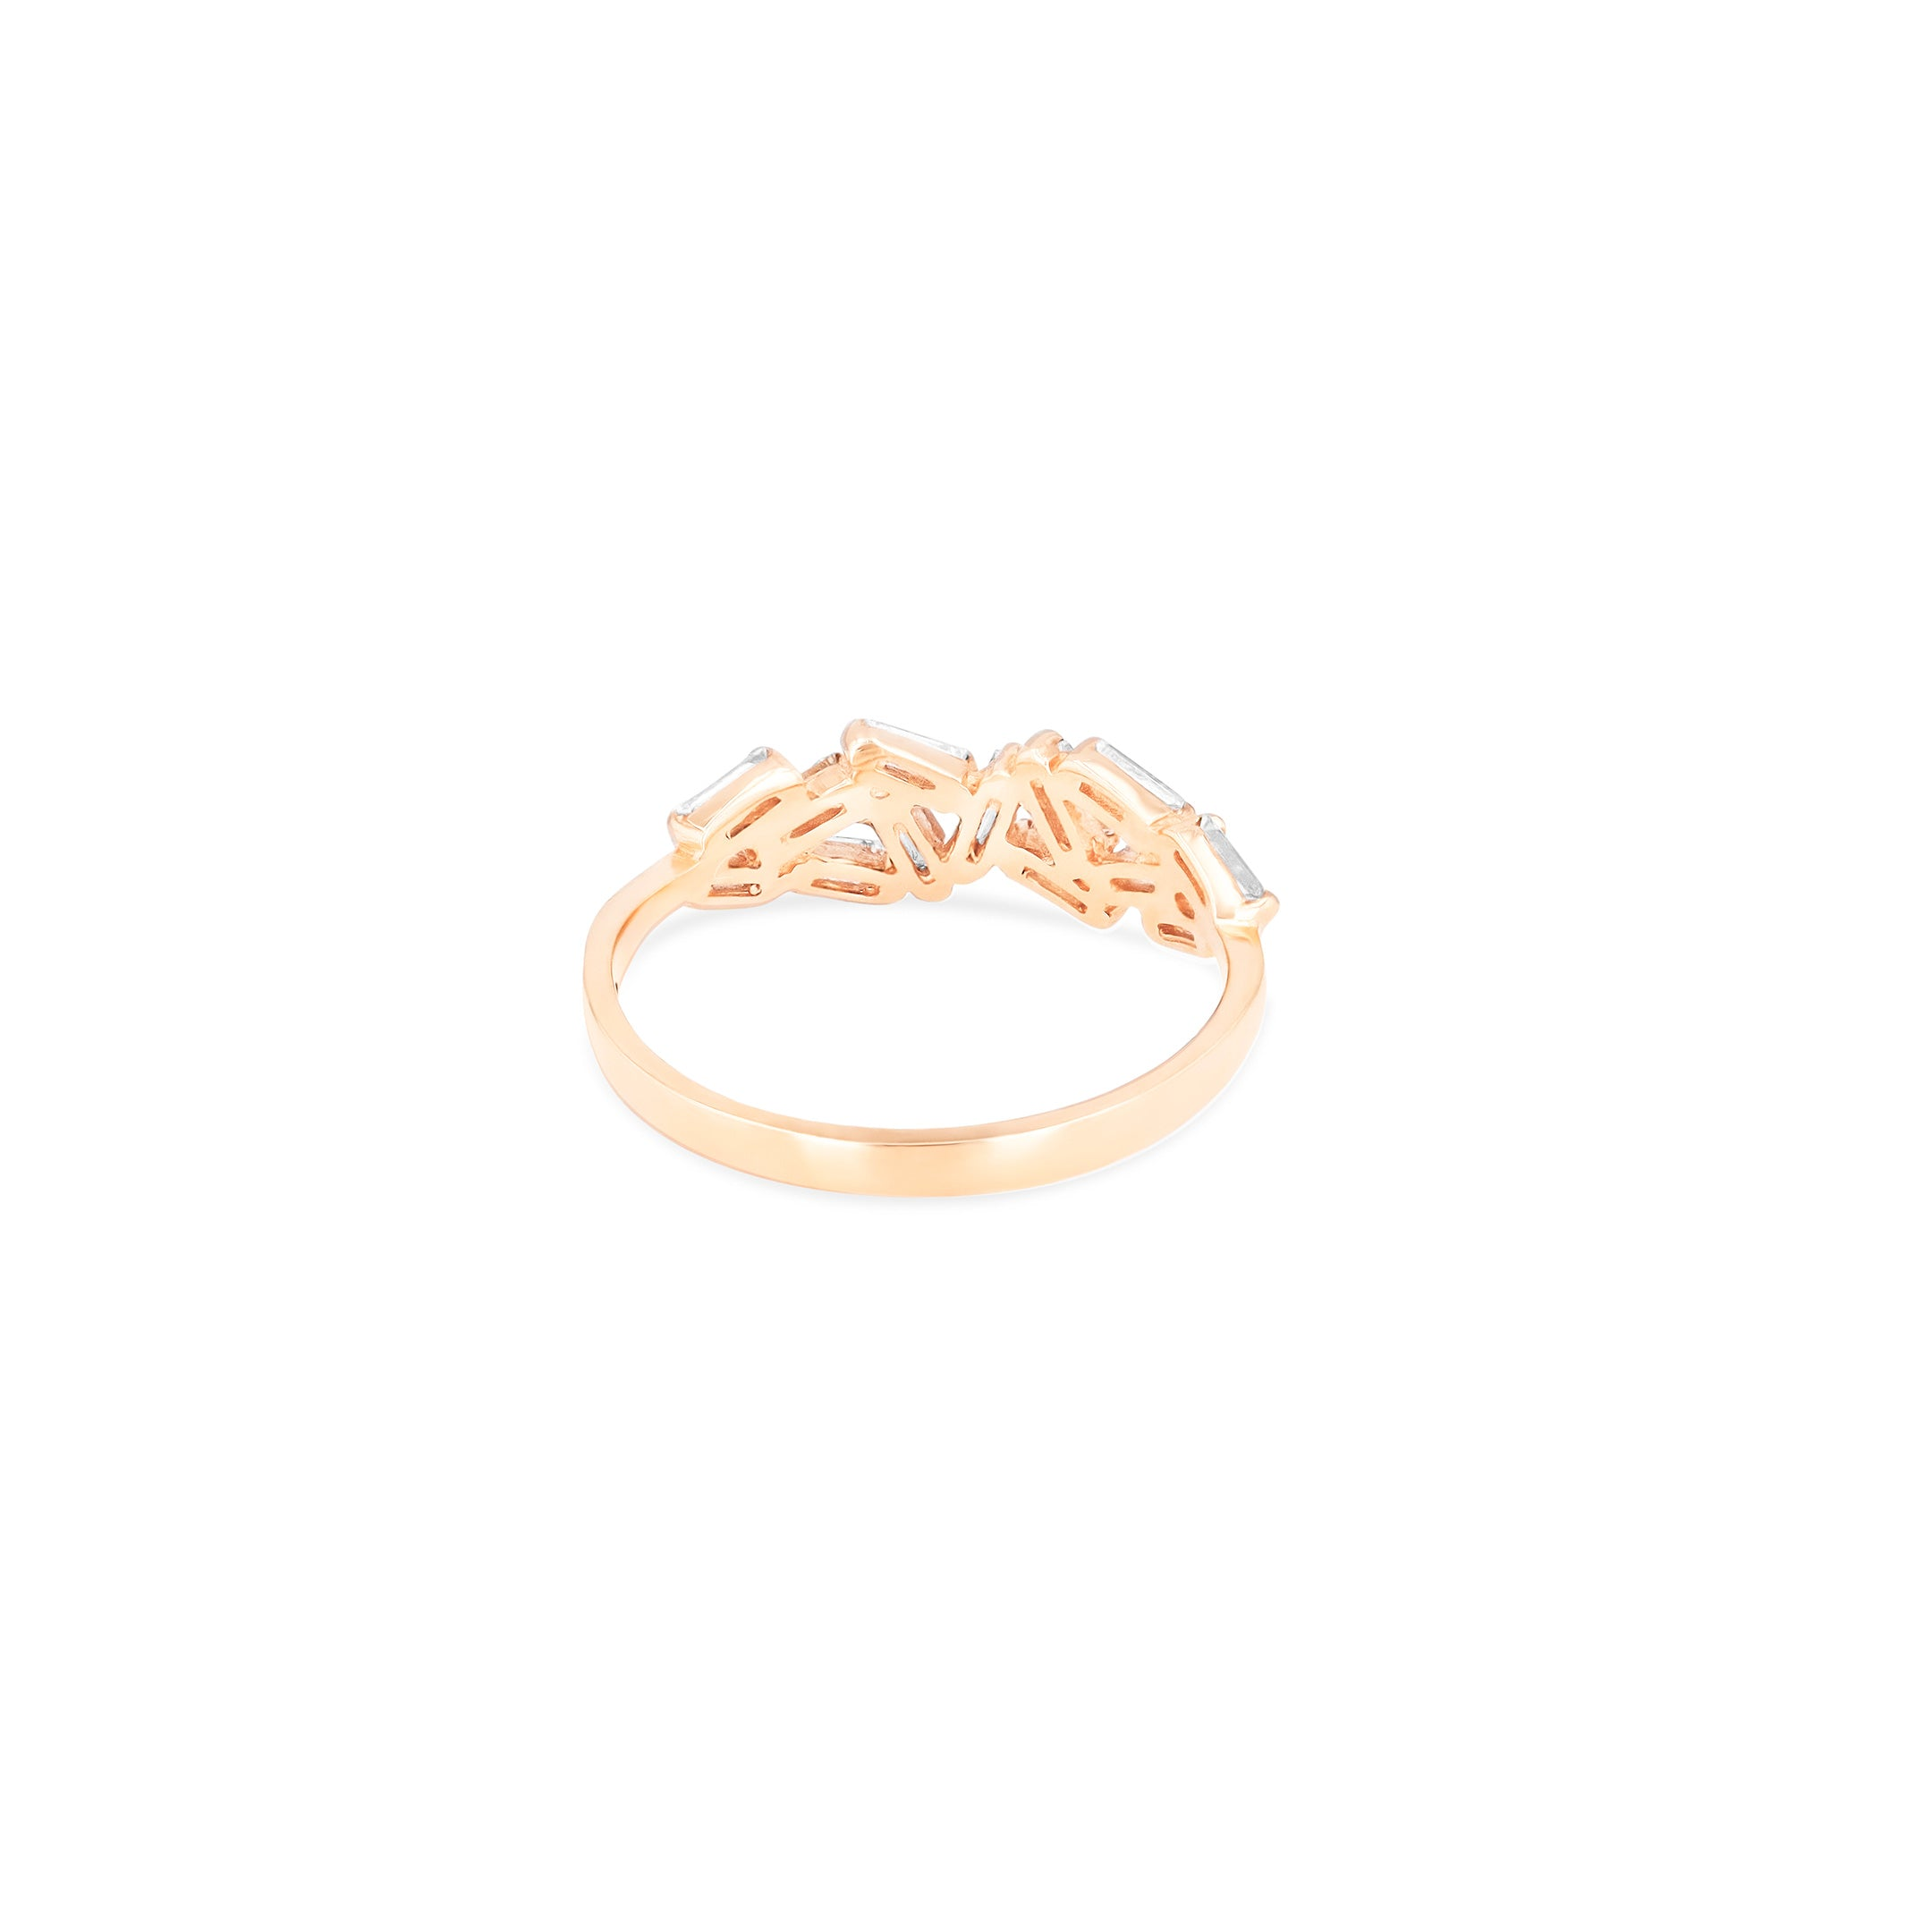 18K ROSE GOLD CHEVRON BAND